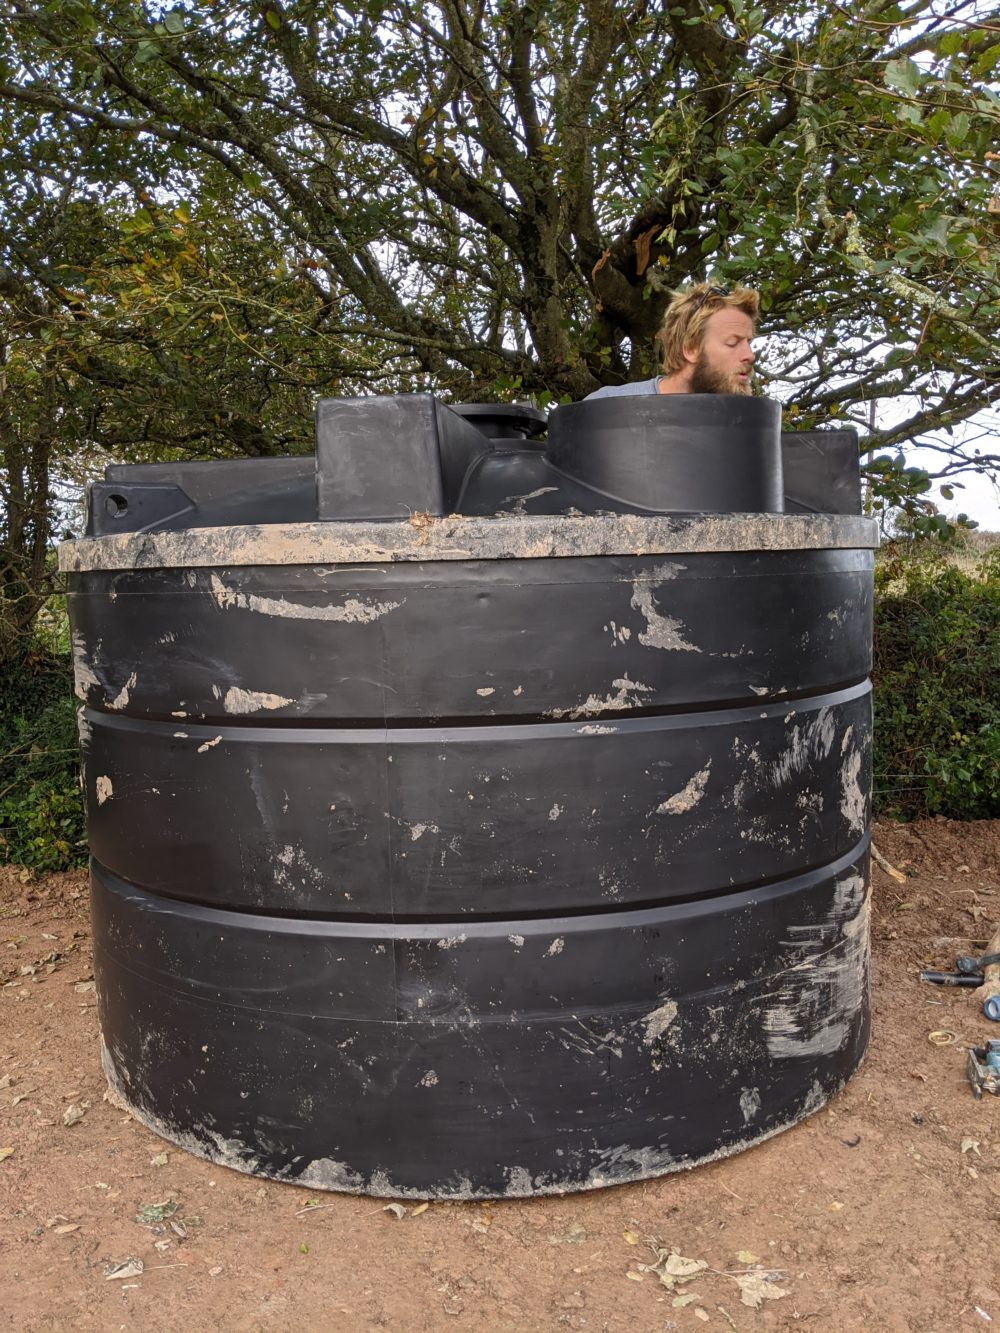 James inspecting our 10,000 litre water tank